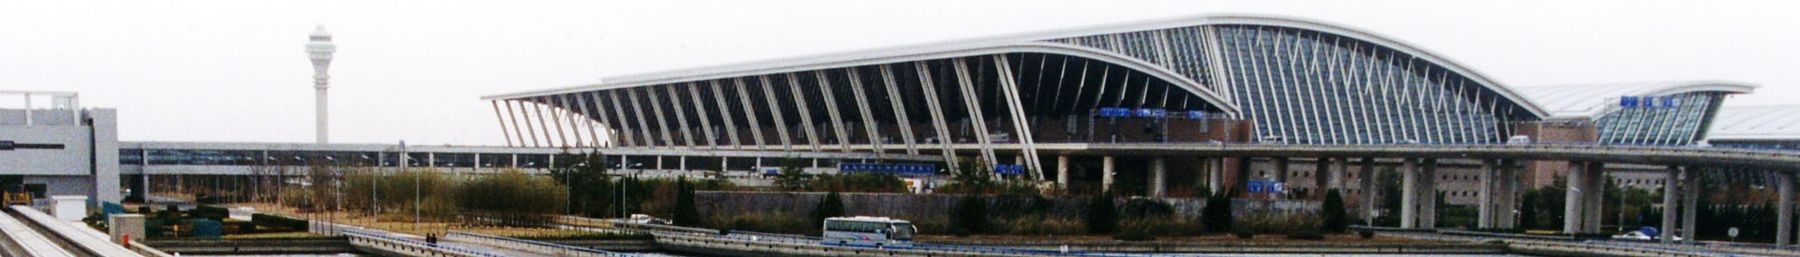 WV banner Pudong Airport.jpg